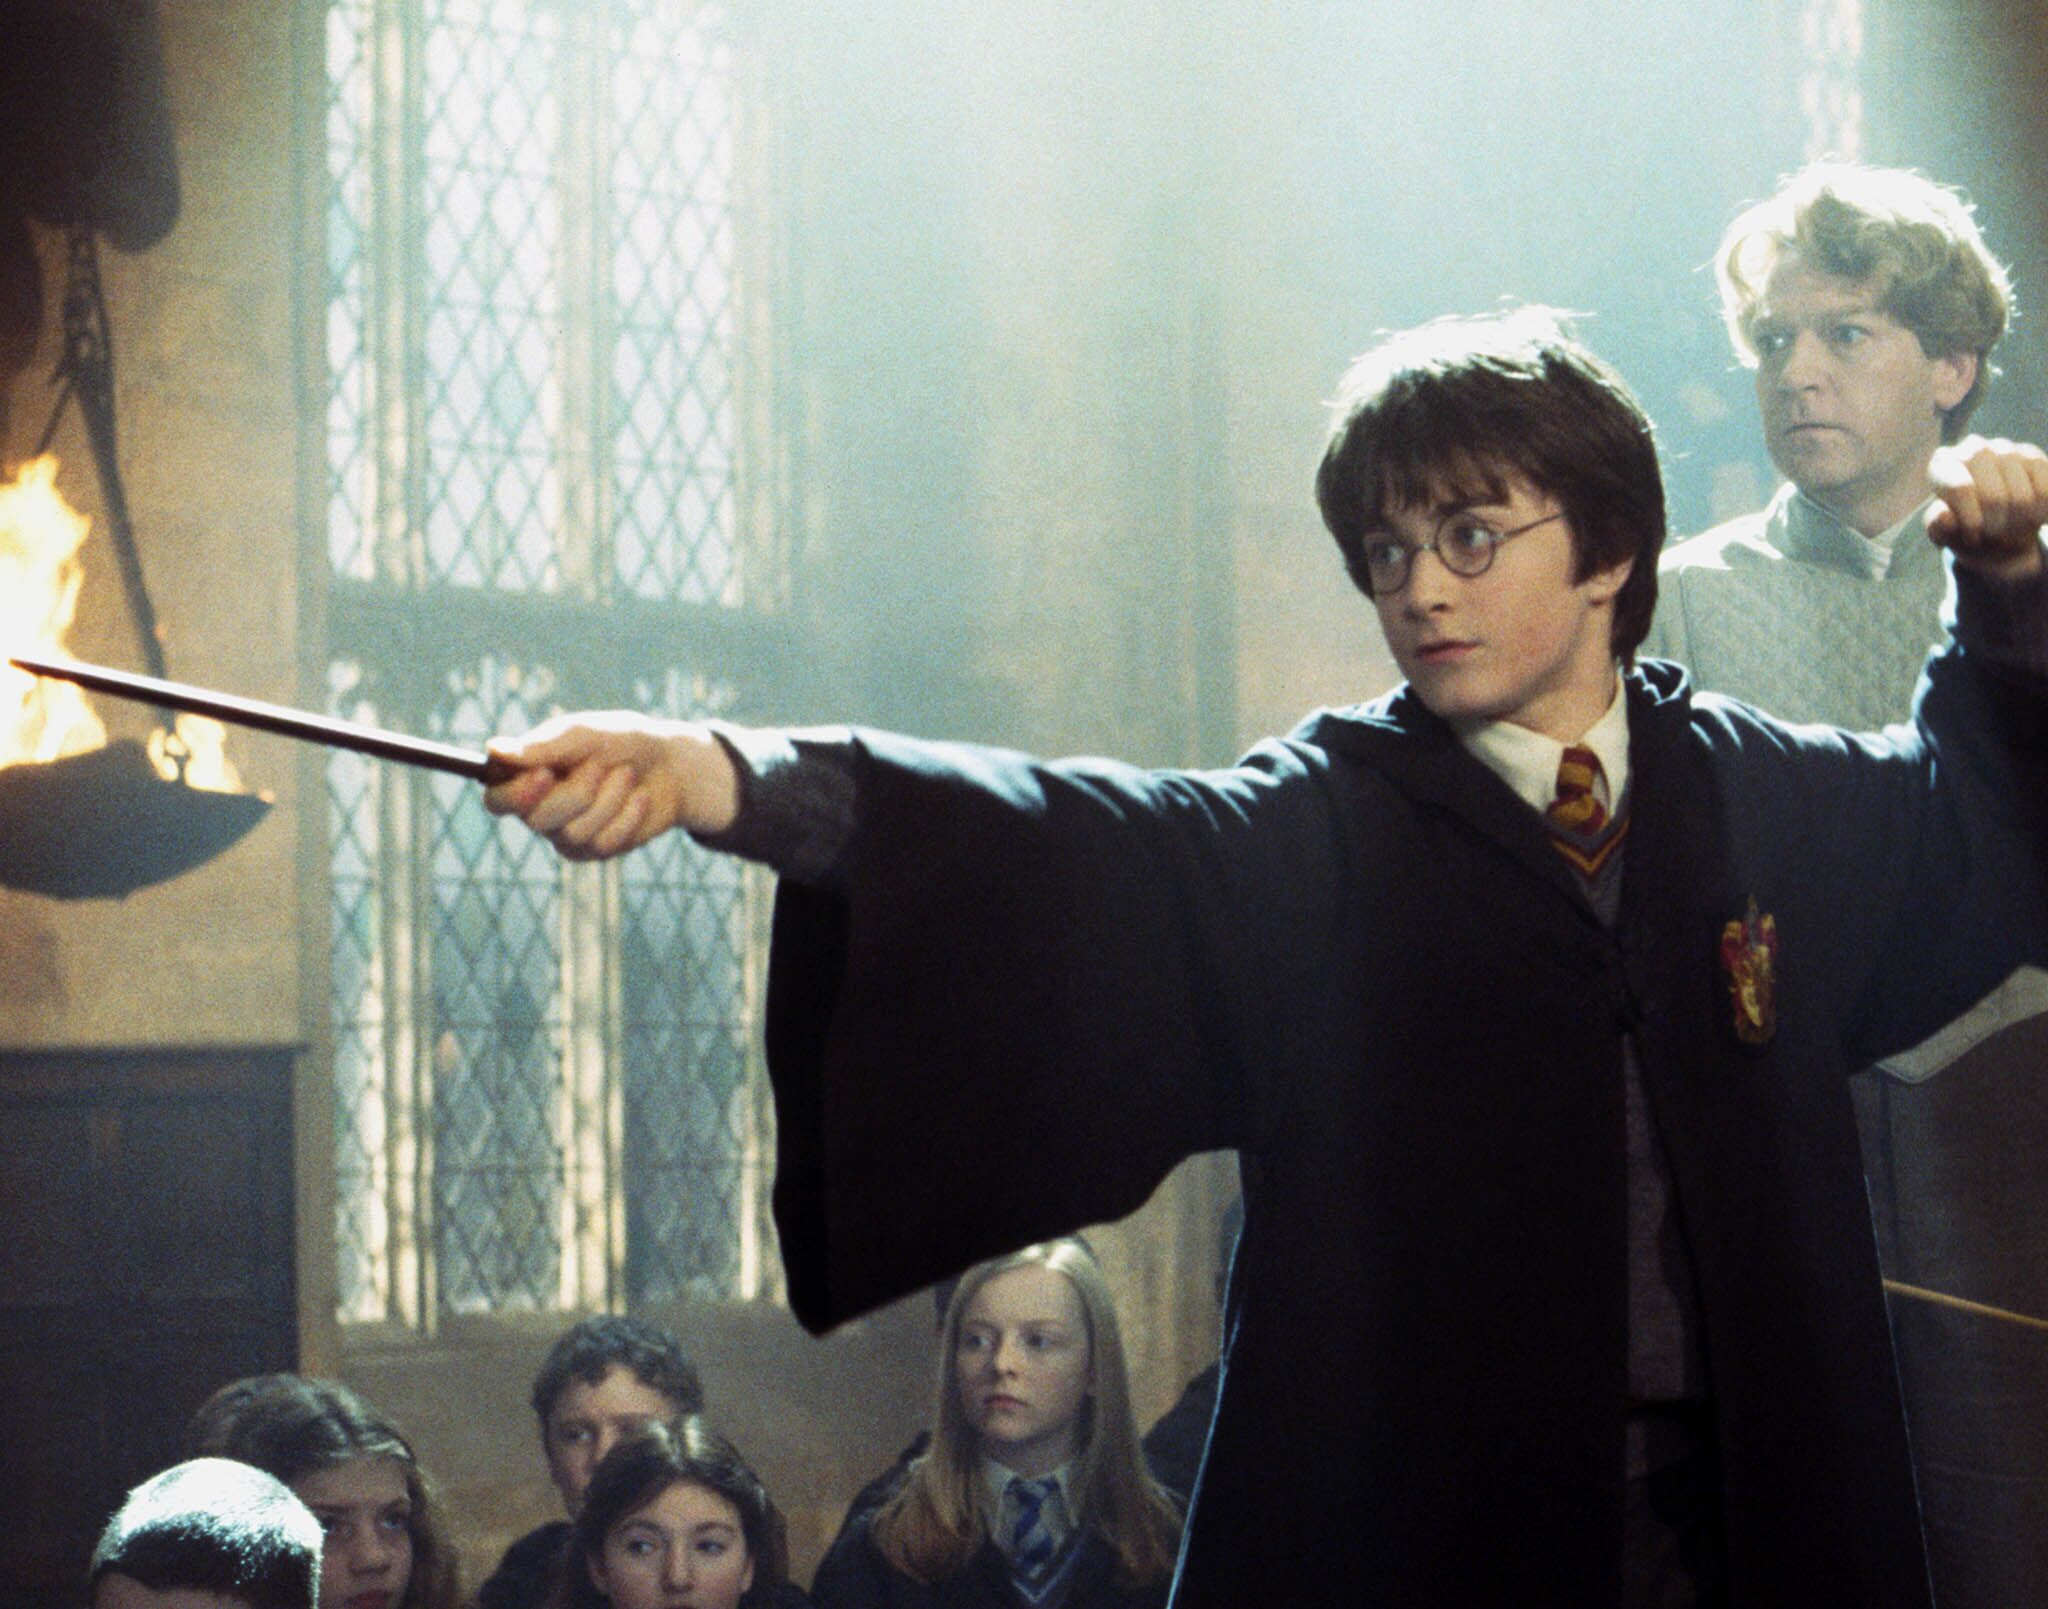 Harry Duels with Draco